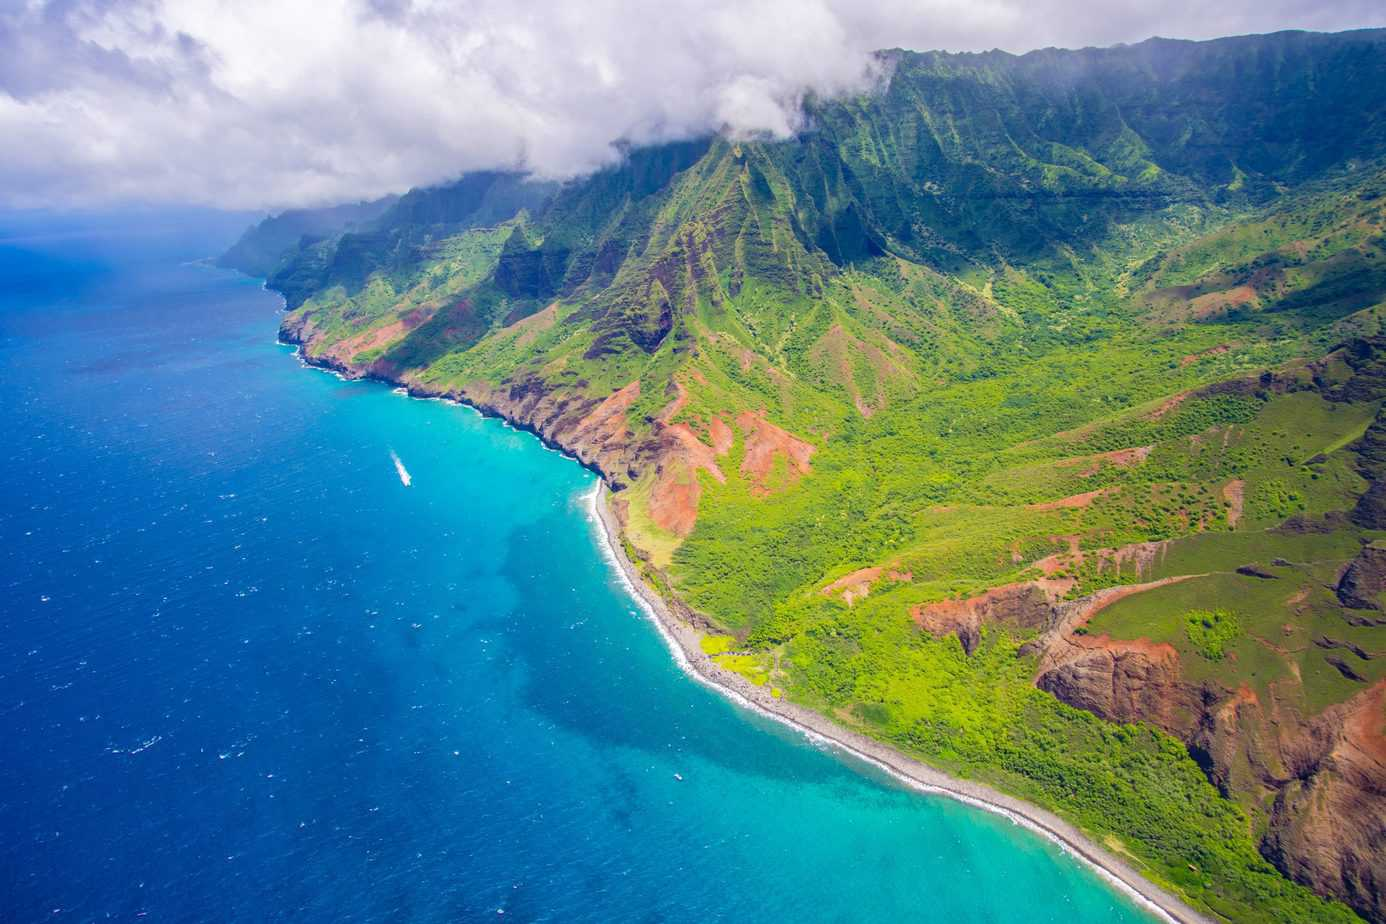 Island of Kauai - Hawaii